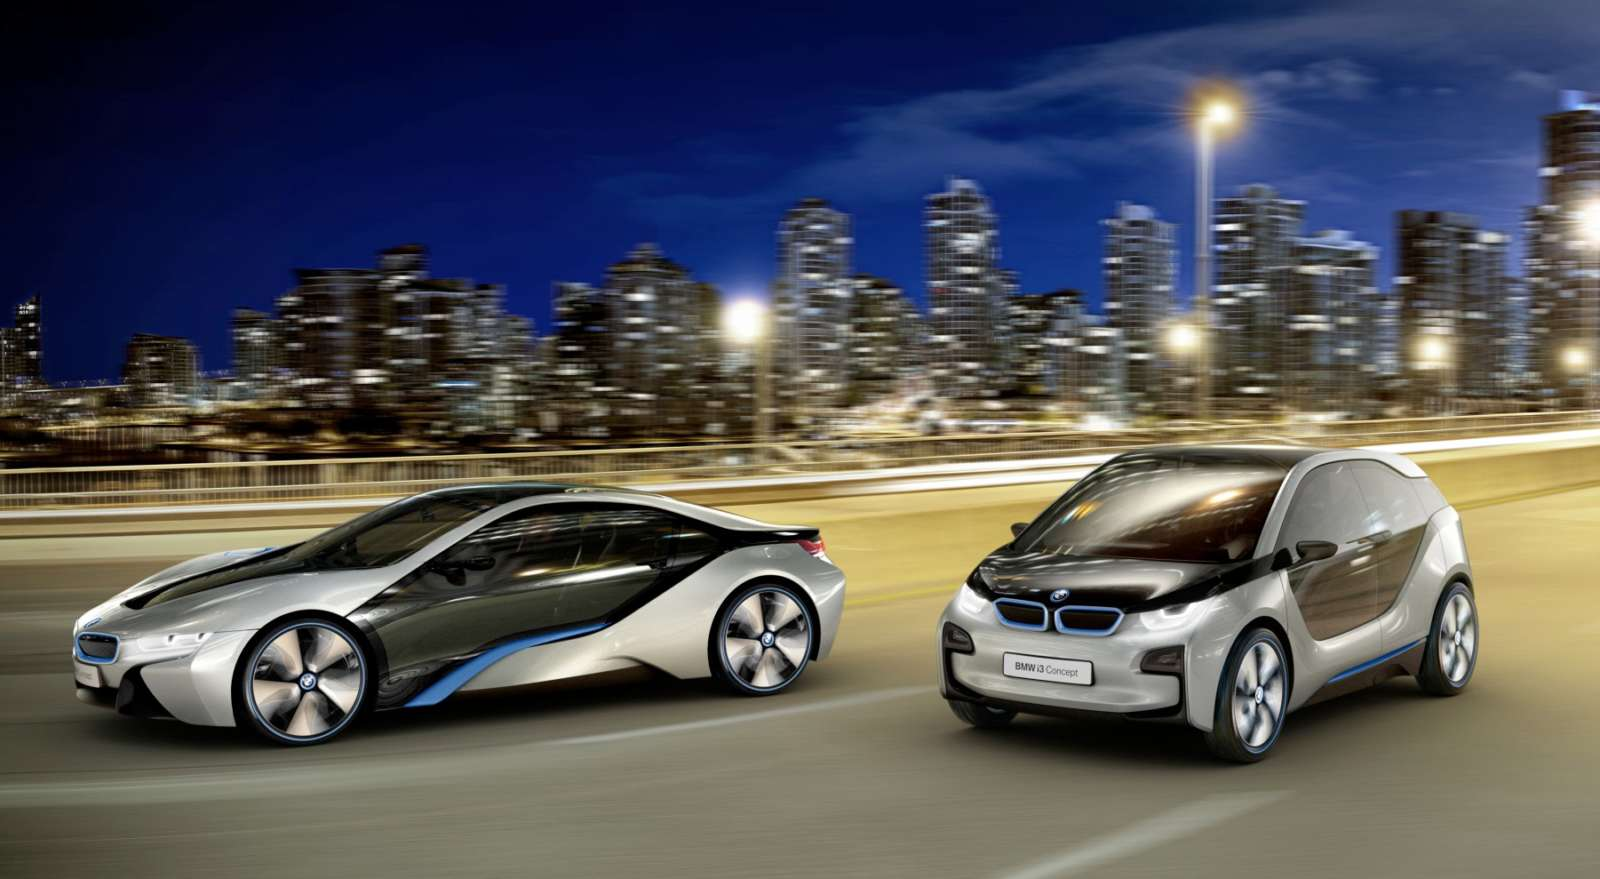 Bmw To Decide On India Launch Of I3 And I8 Next Year Motoroids